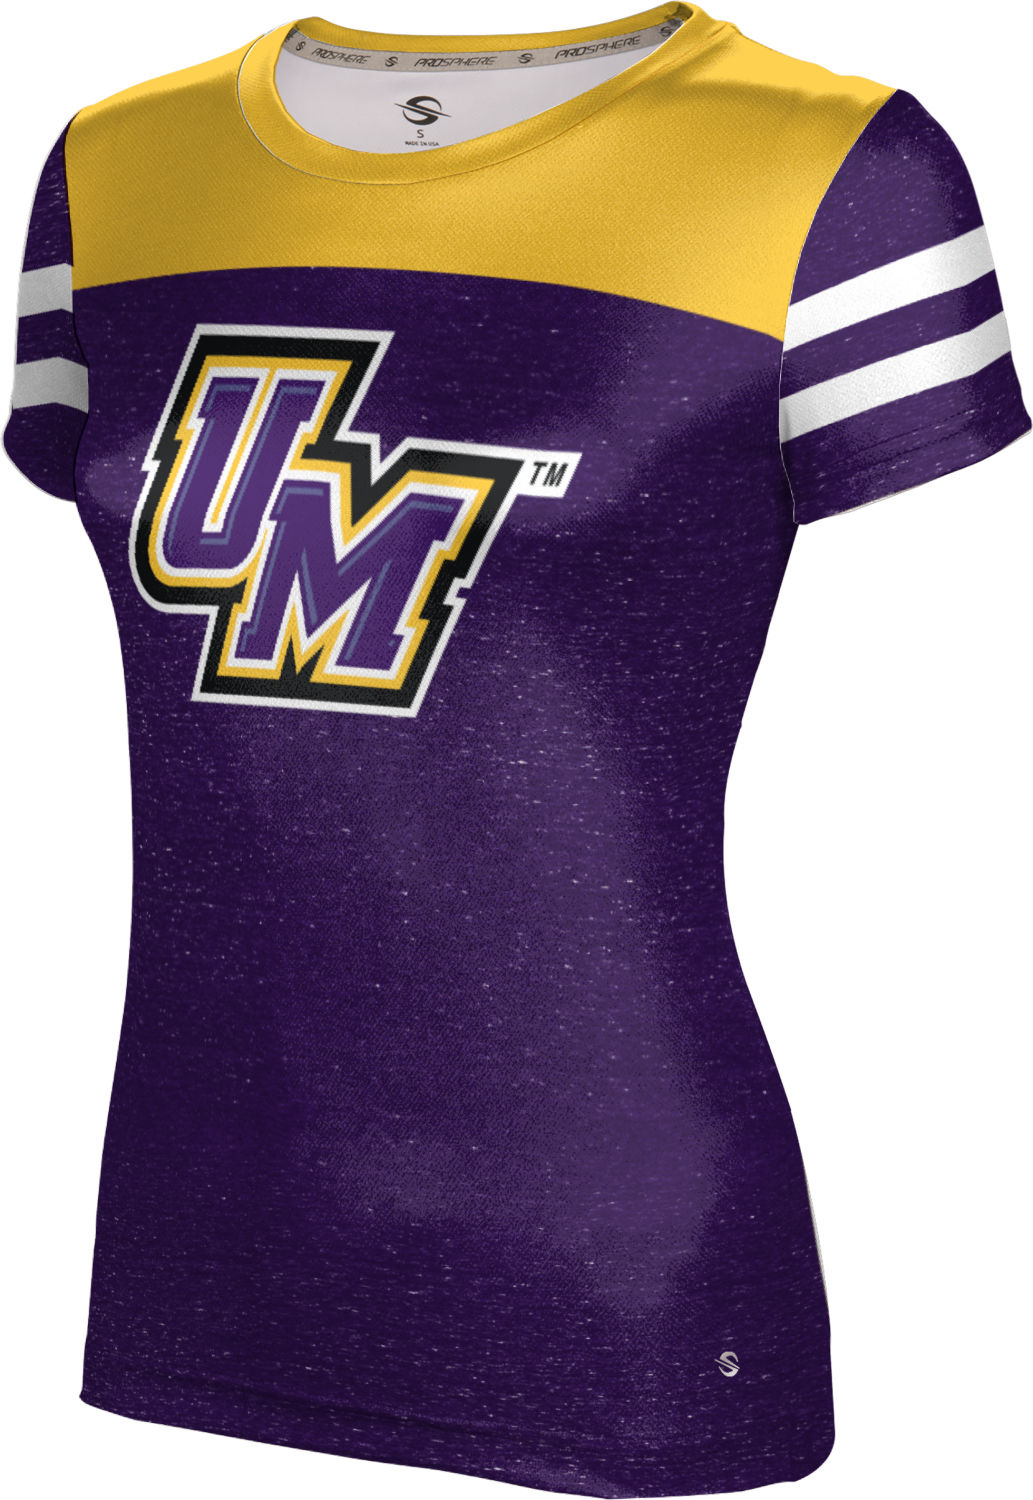 ProSphere Girls' University of Montevallo Gameday Tech Tee